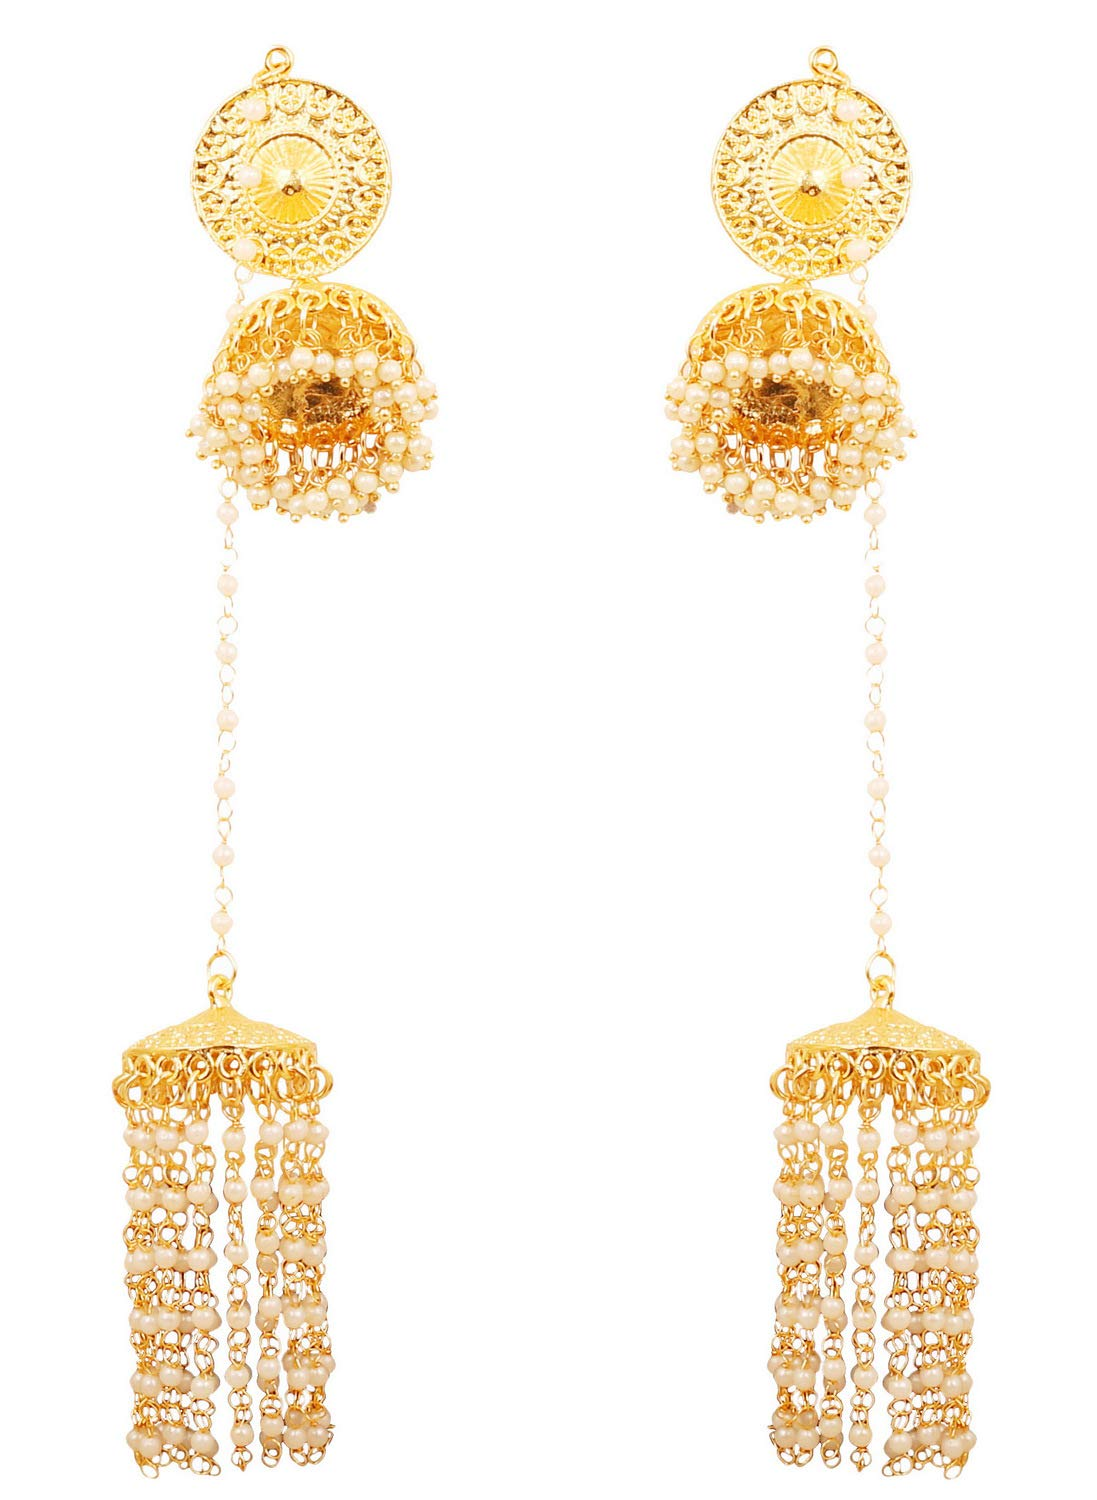 Touchstone Indian Bollywood Faux Pearls Hangings Exclusive Kashmere Traditional Grand Designer Jewelry Chandelier Jhumki Earrings for Women in Gold Tone.